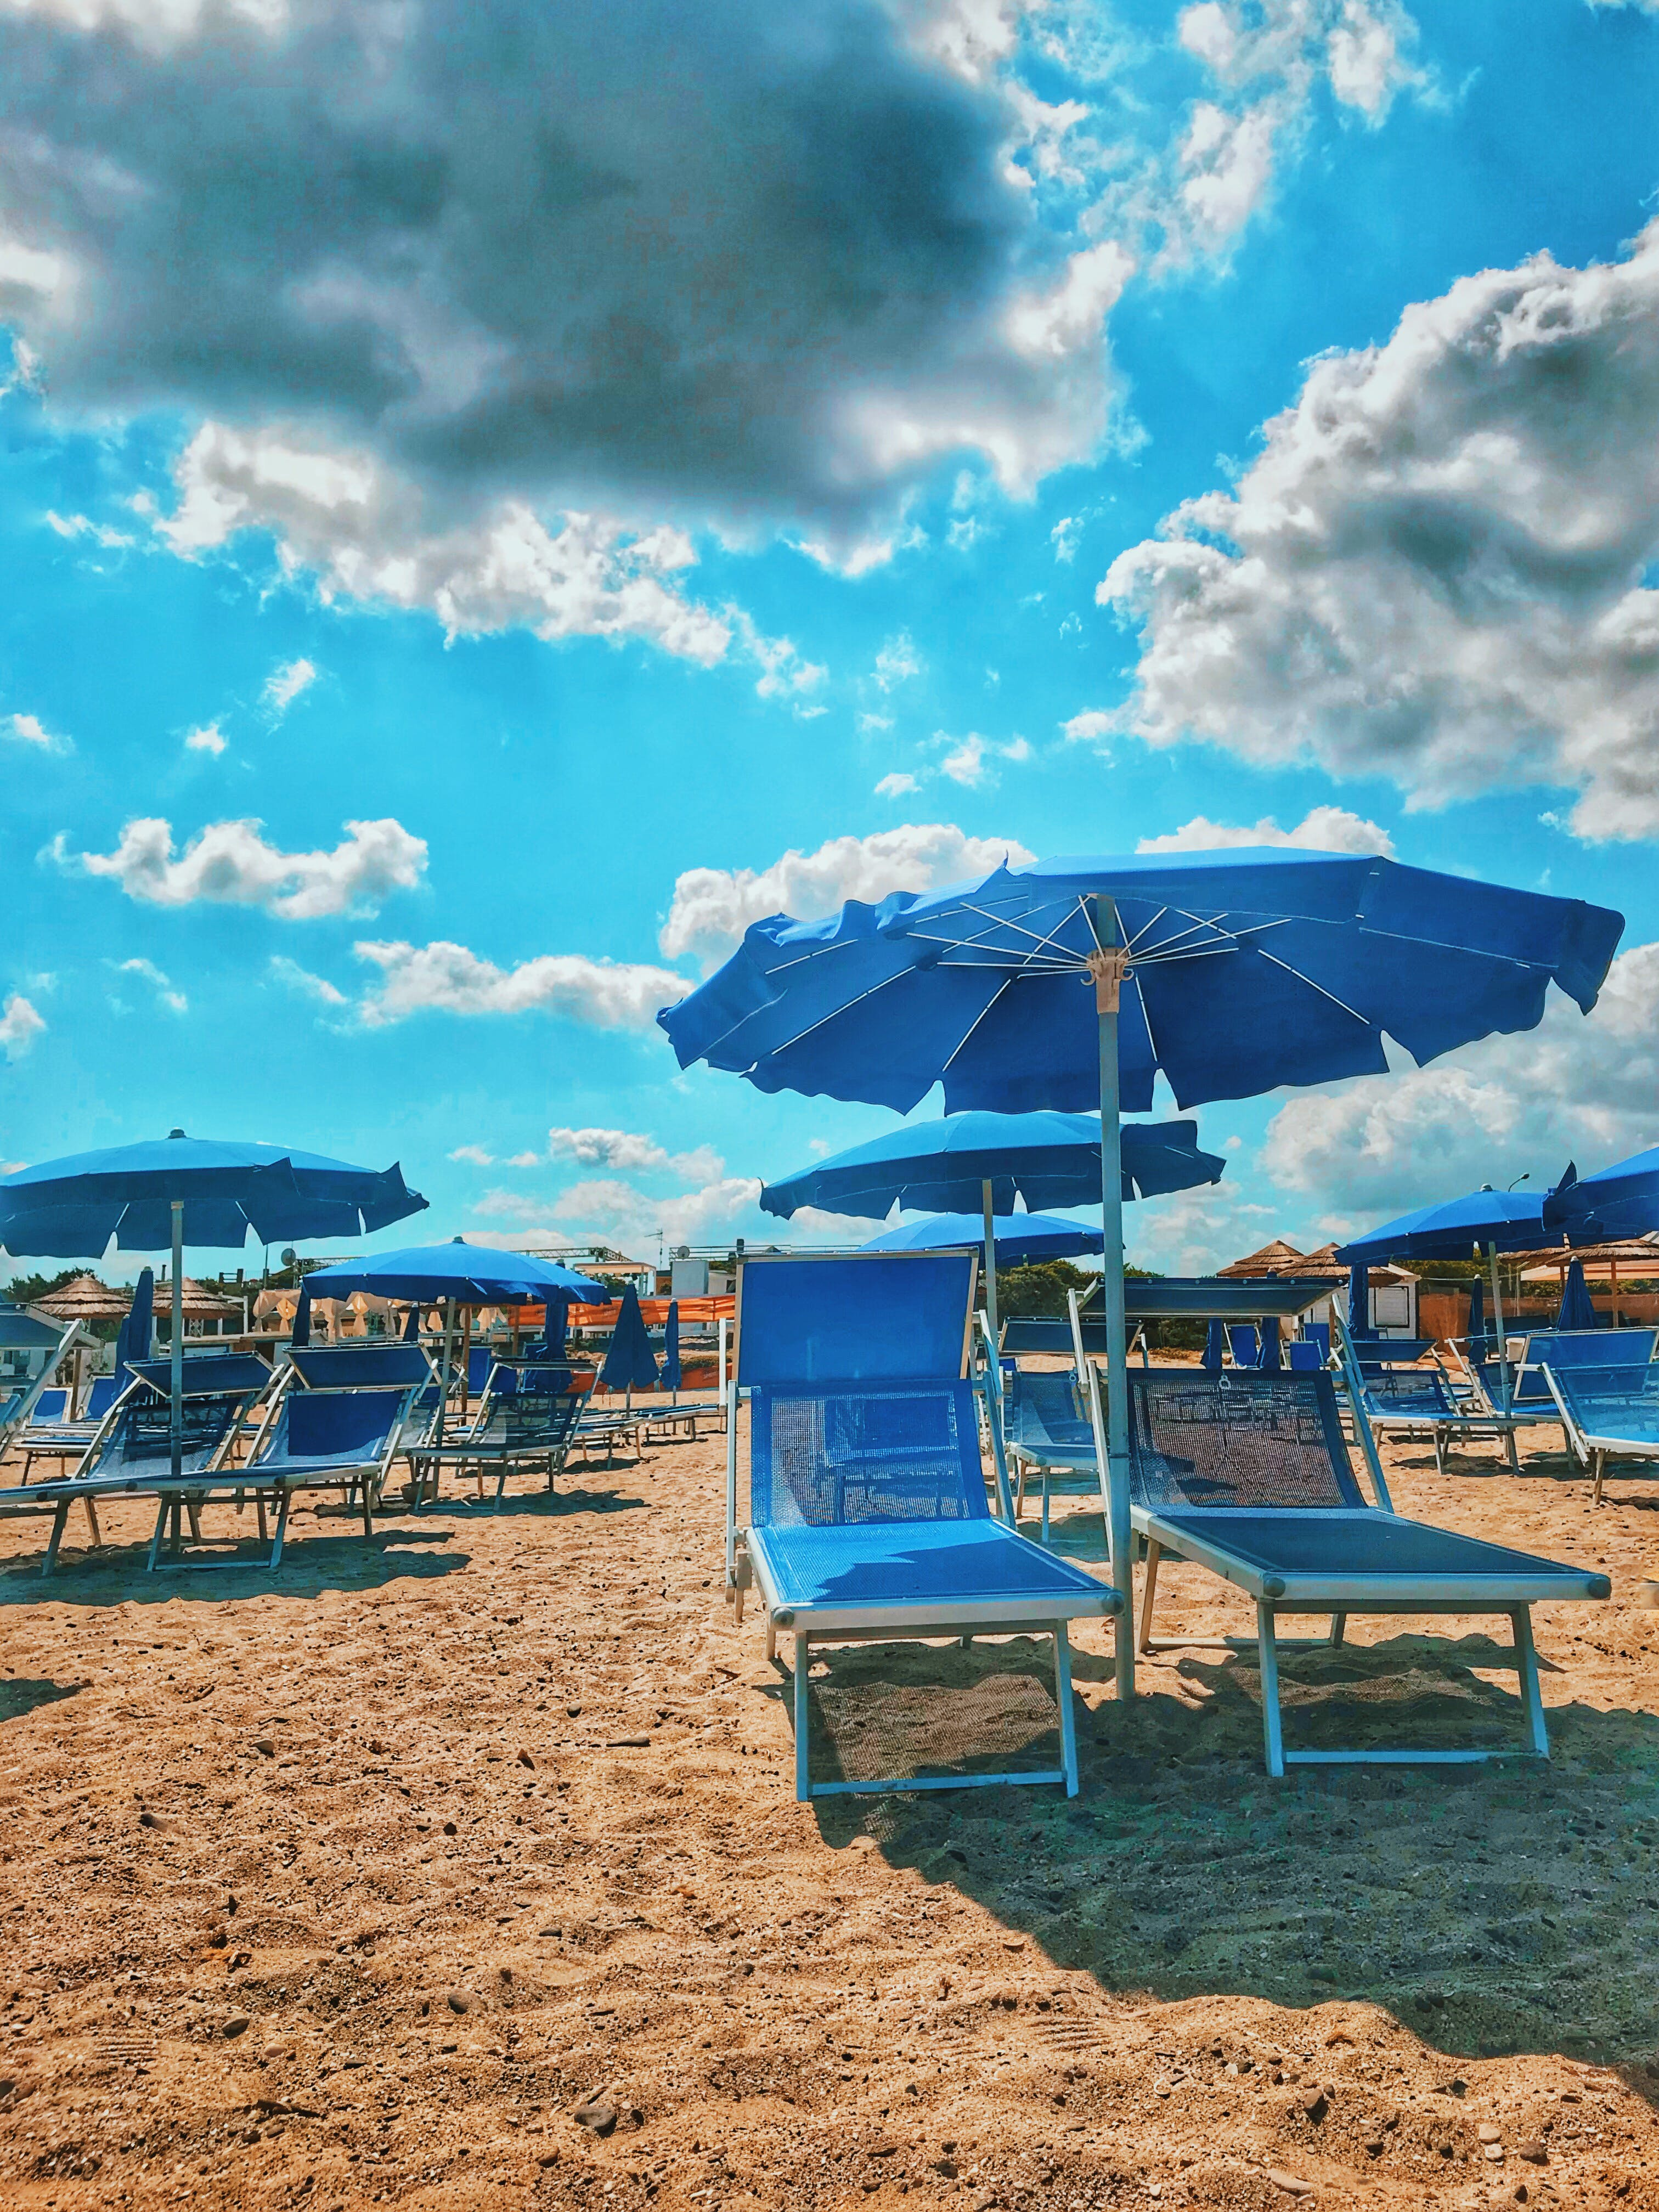 Blue Parasols And Sun Loungers On Sand